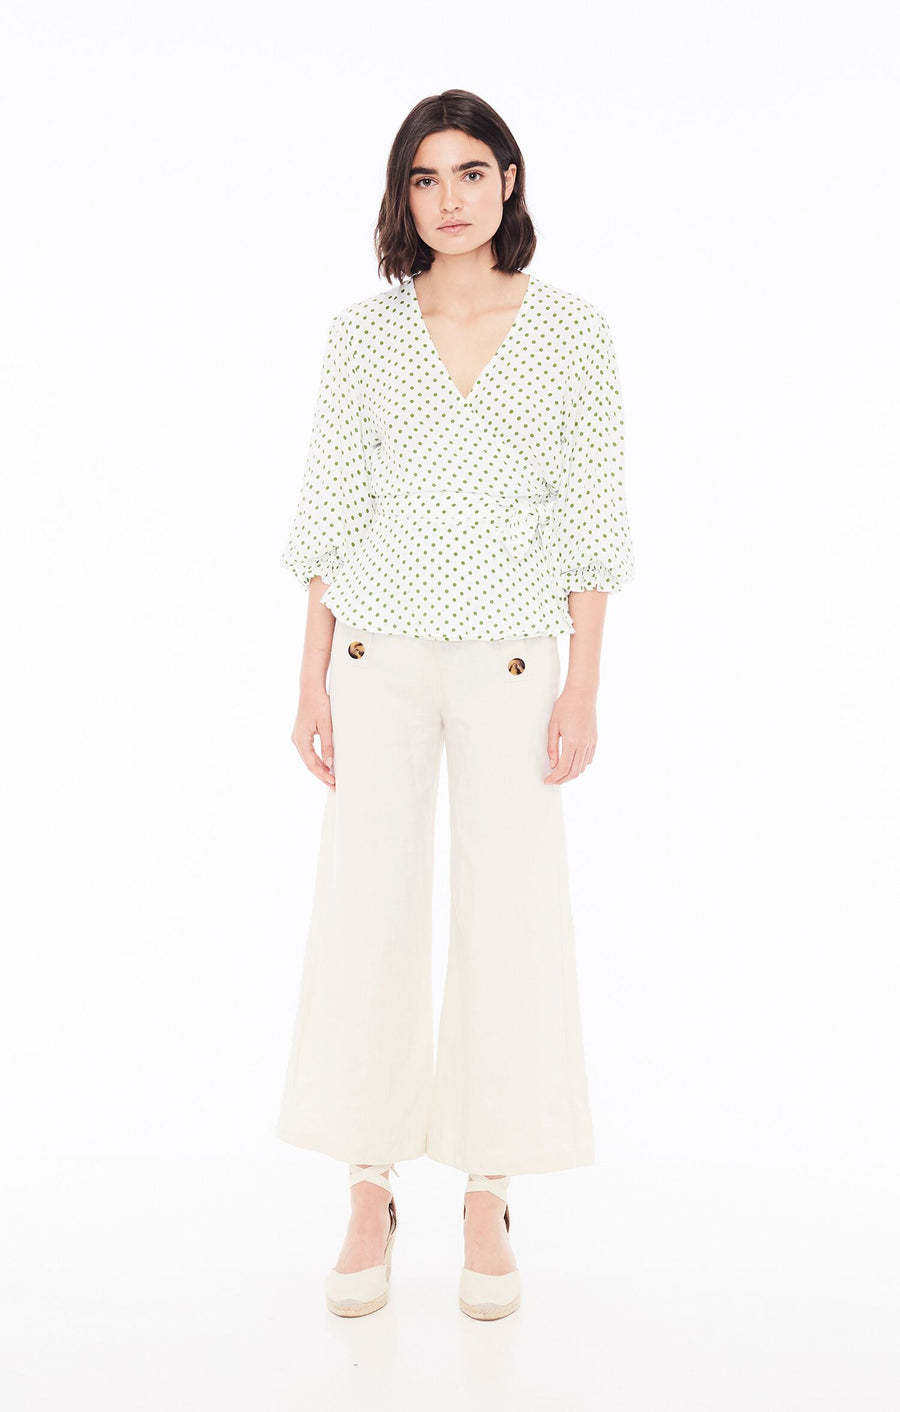 FAITHFULL THE BRAND - Lavender Top - Lula Dot Green